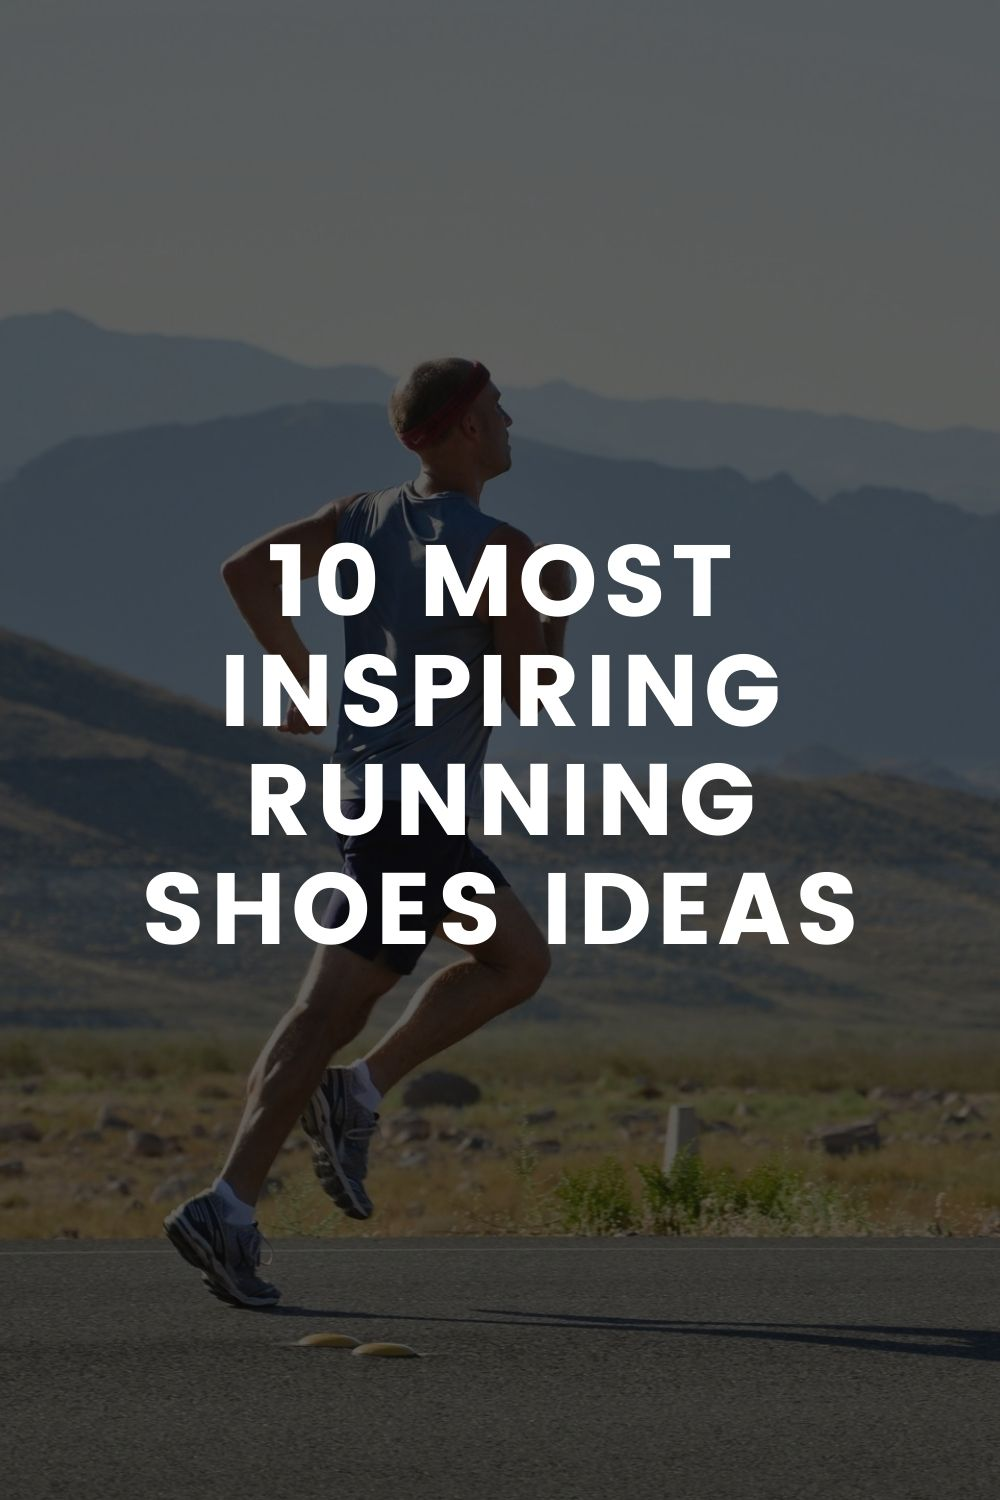 10 Most Inspiring Running Shoes Ideas